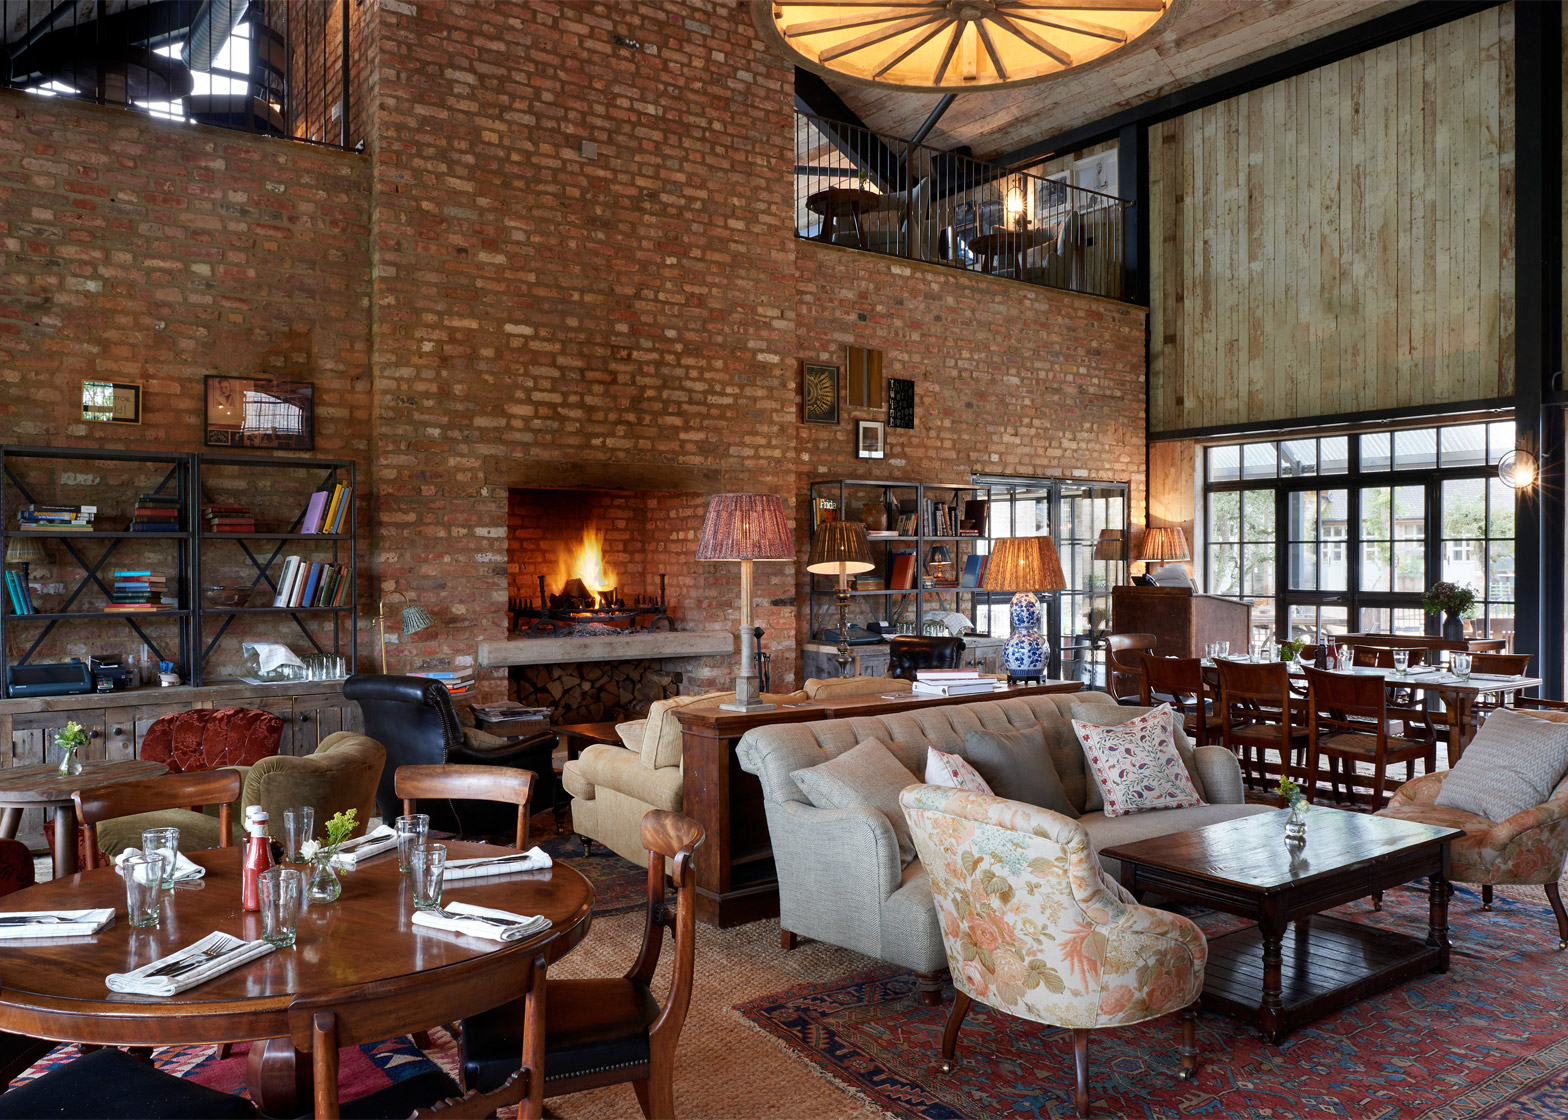 Farmhouse Coffee Shop Soho House And Michaelis Boyd Turn Farm Into Luxury Members Hotel